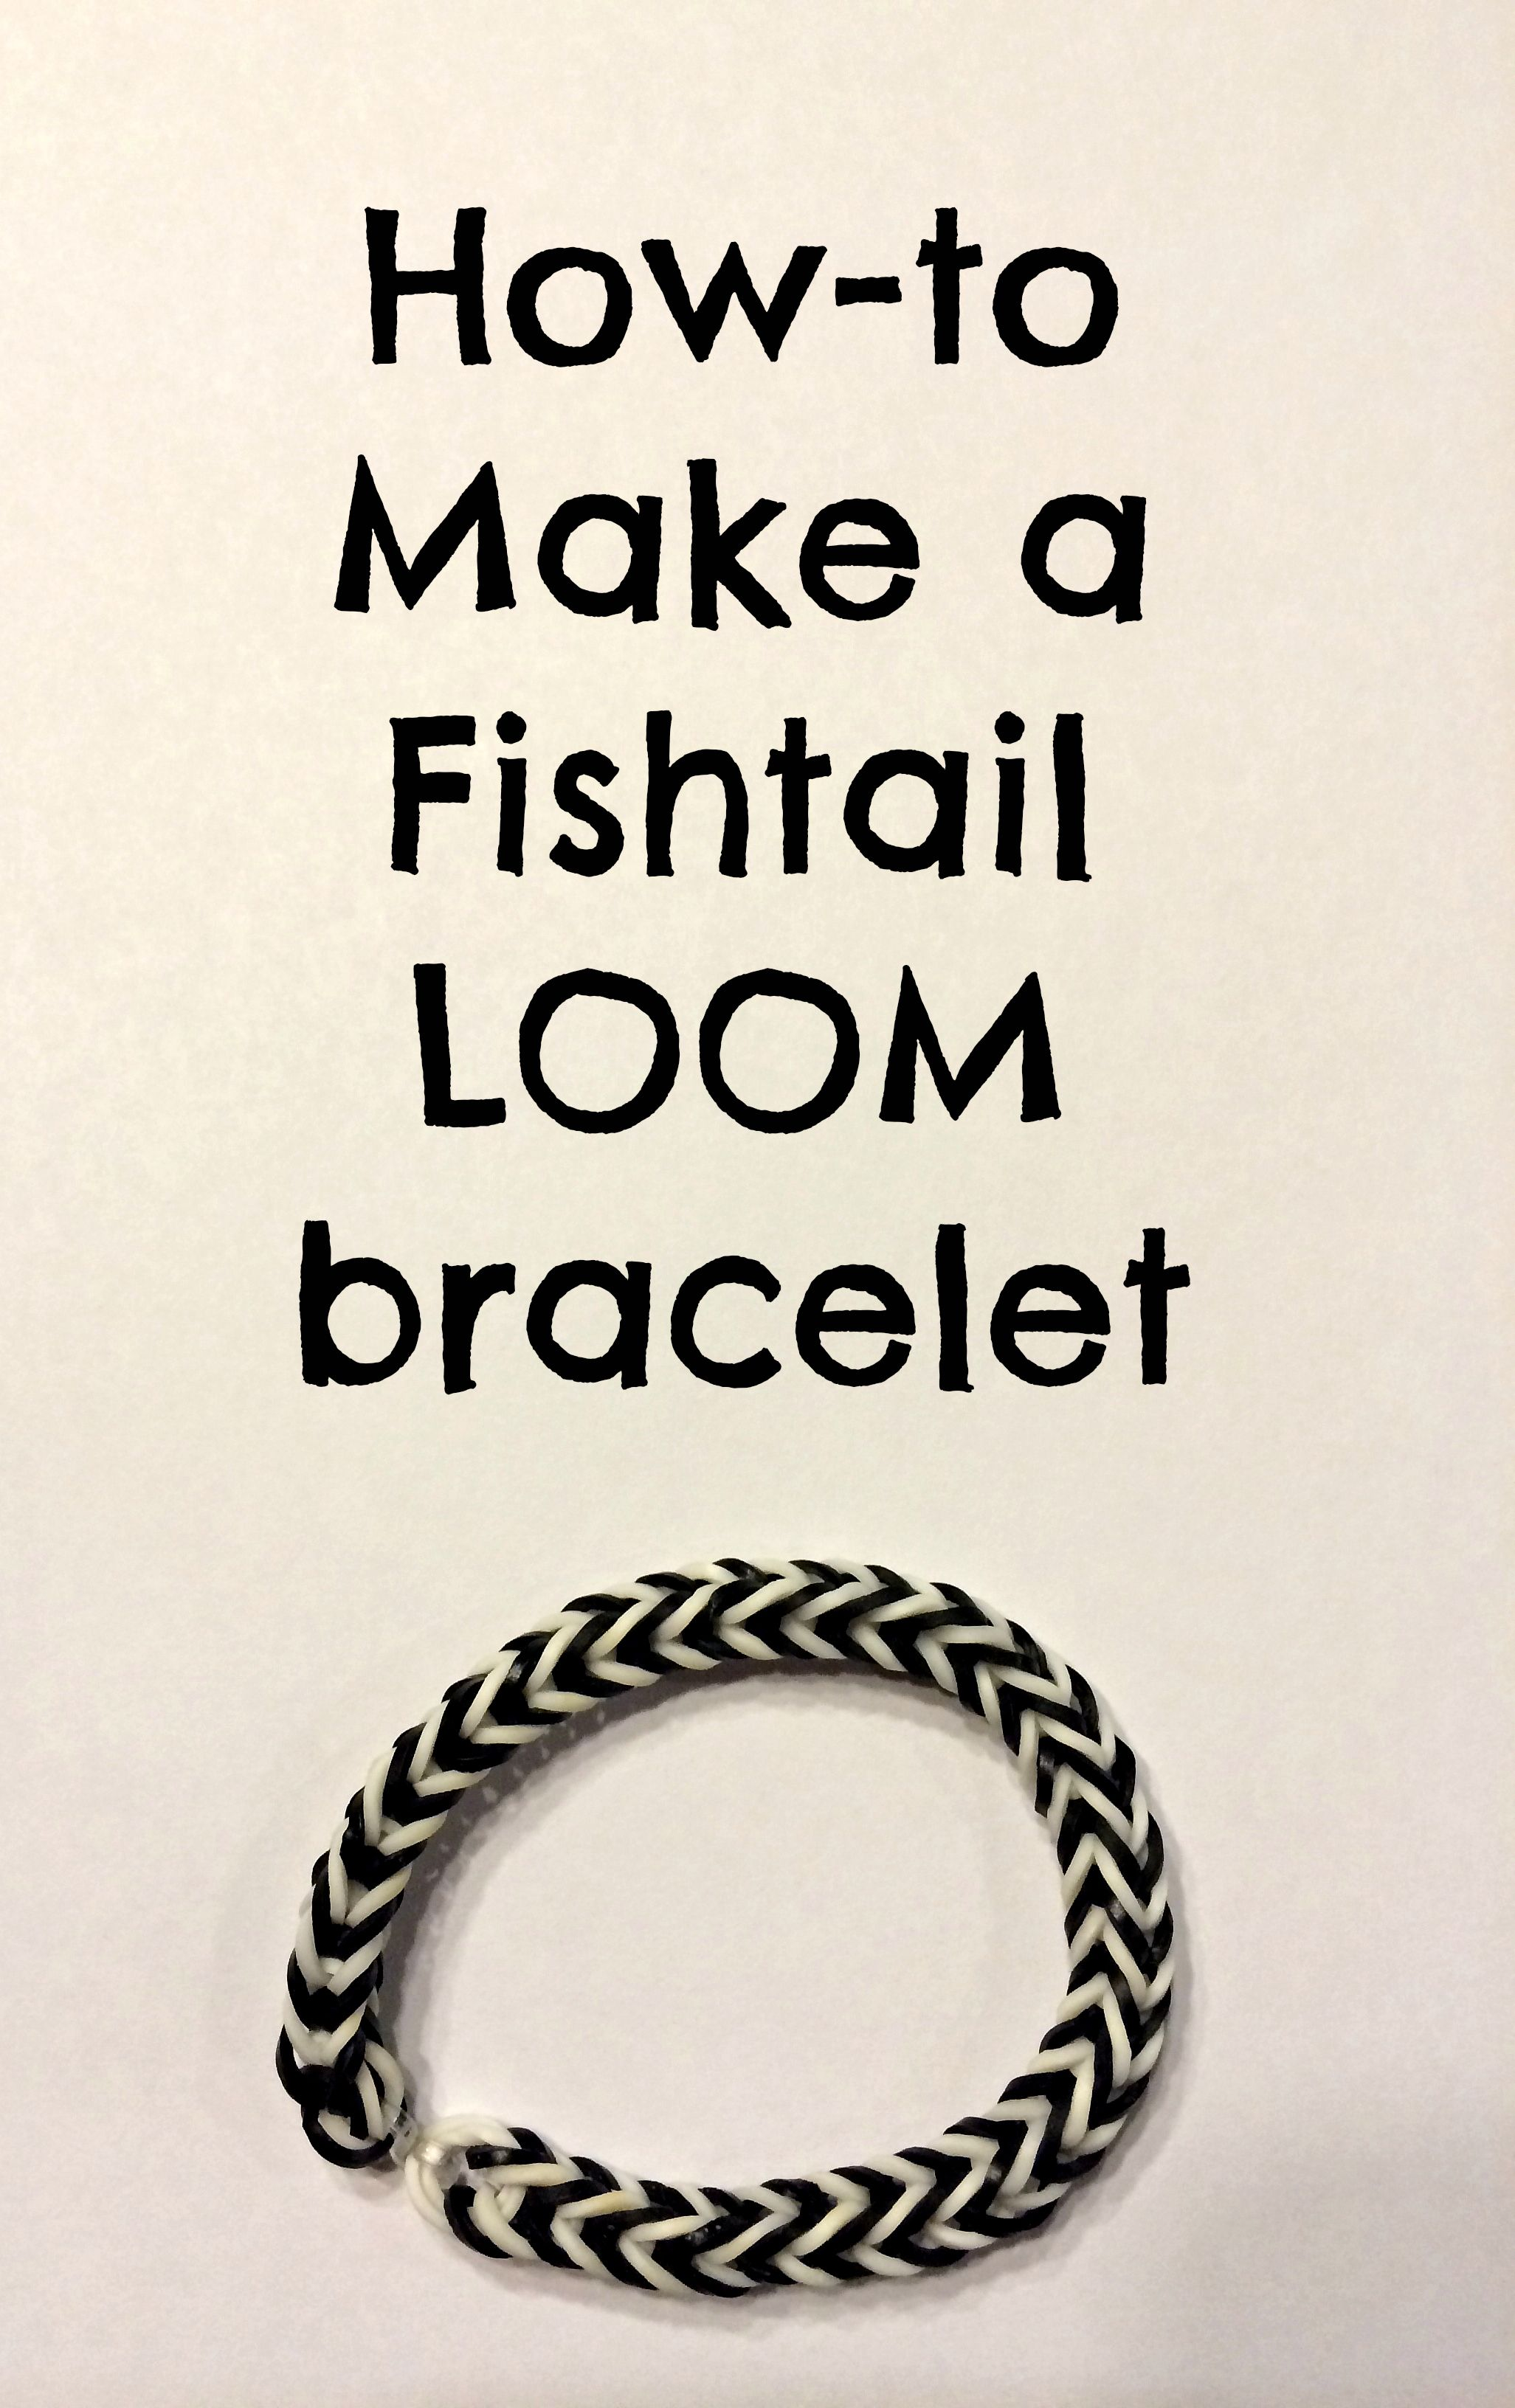 How to make a Fishtail Bracelet- Step by Step Photo Instructions